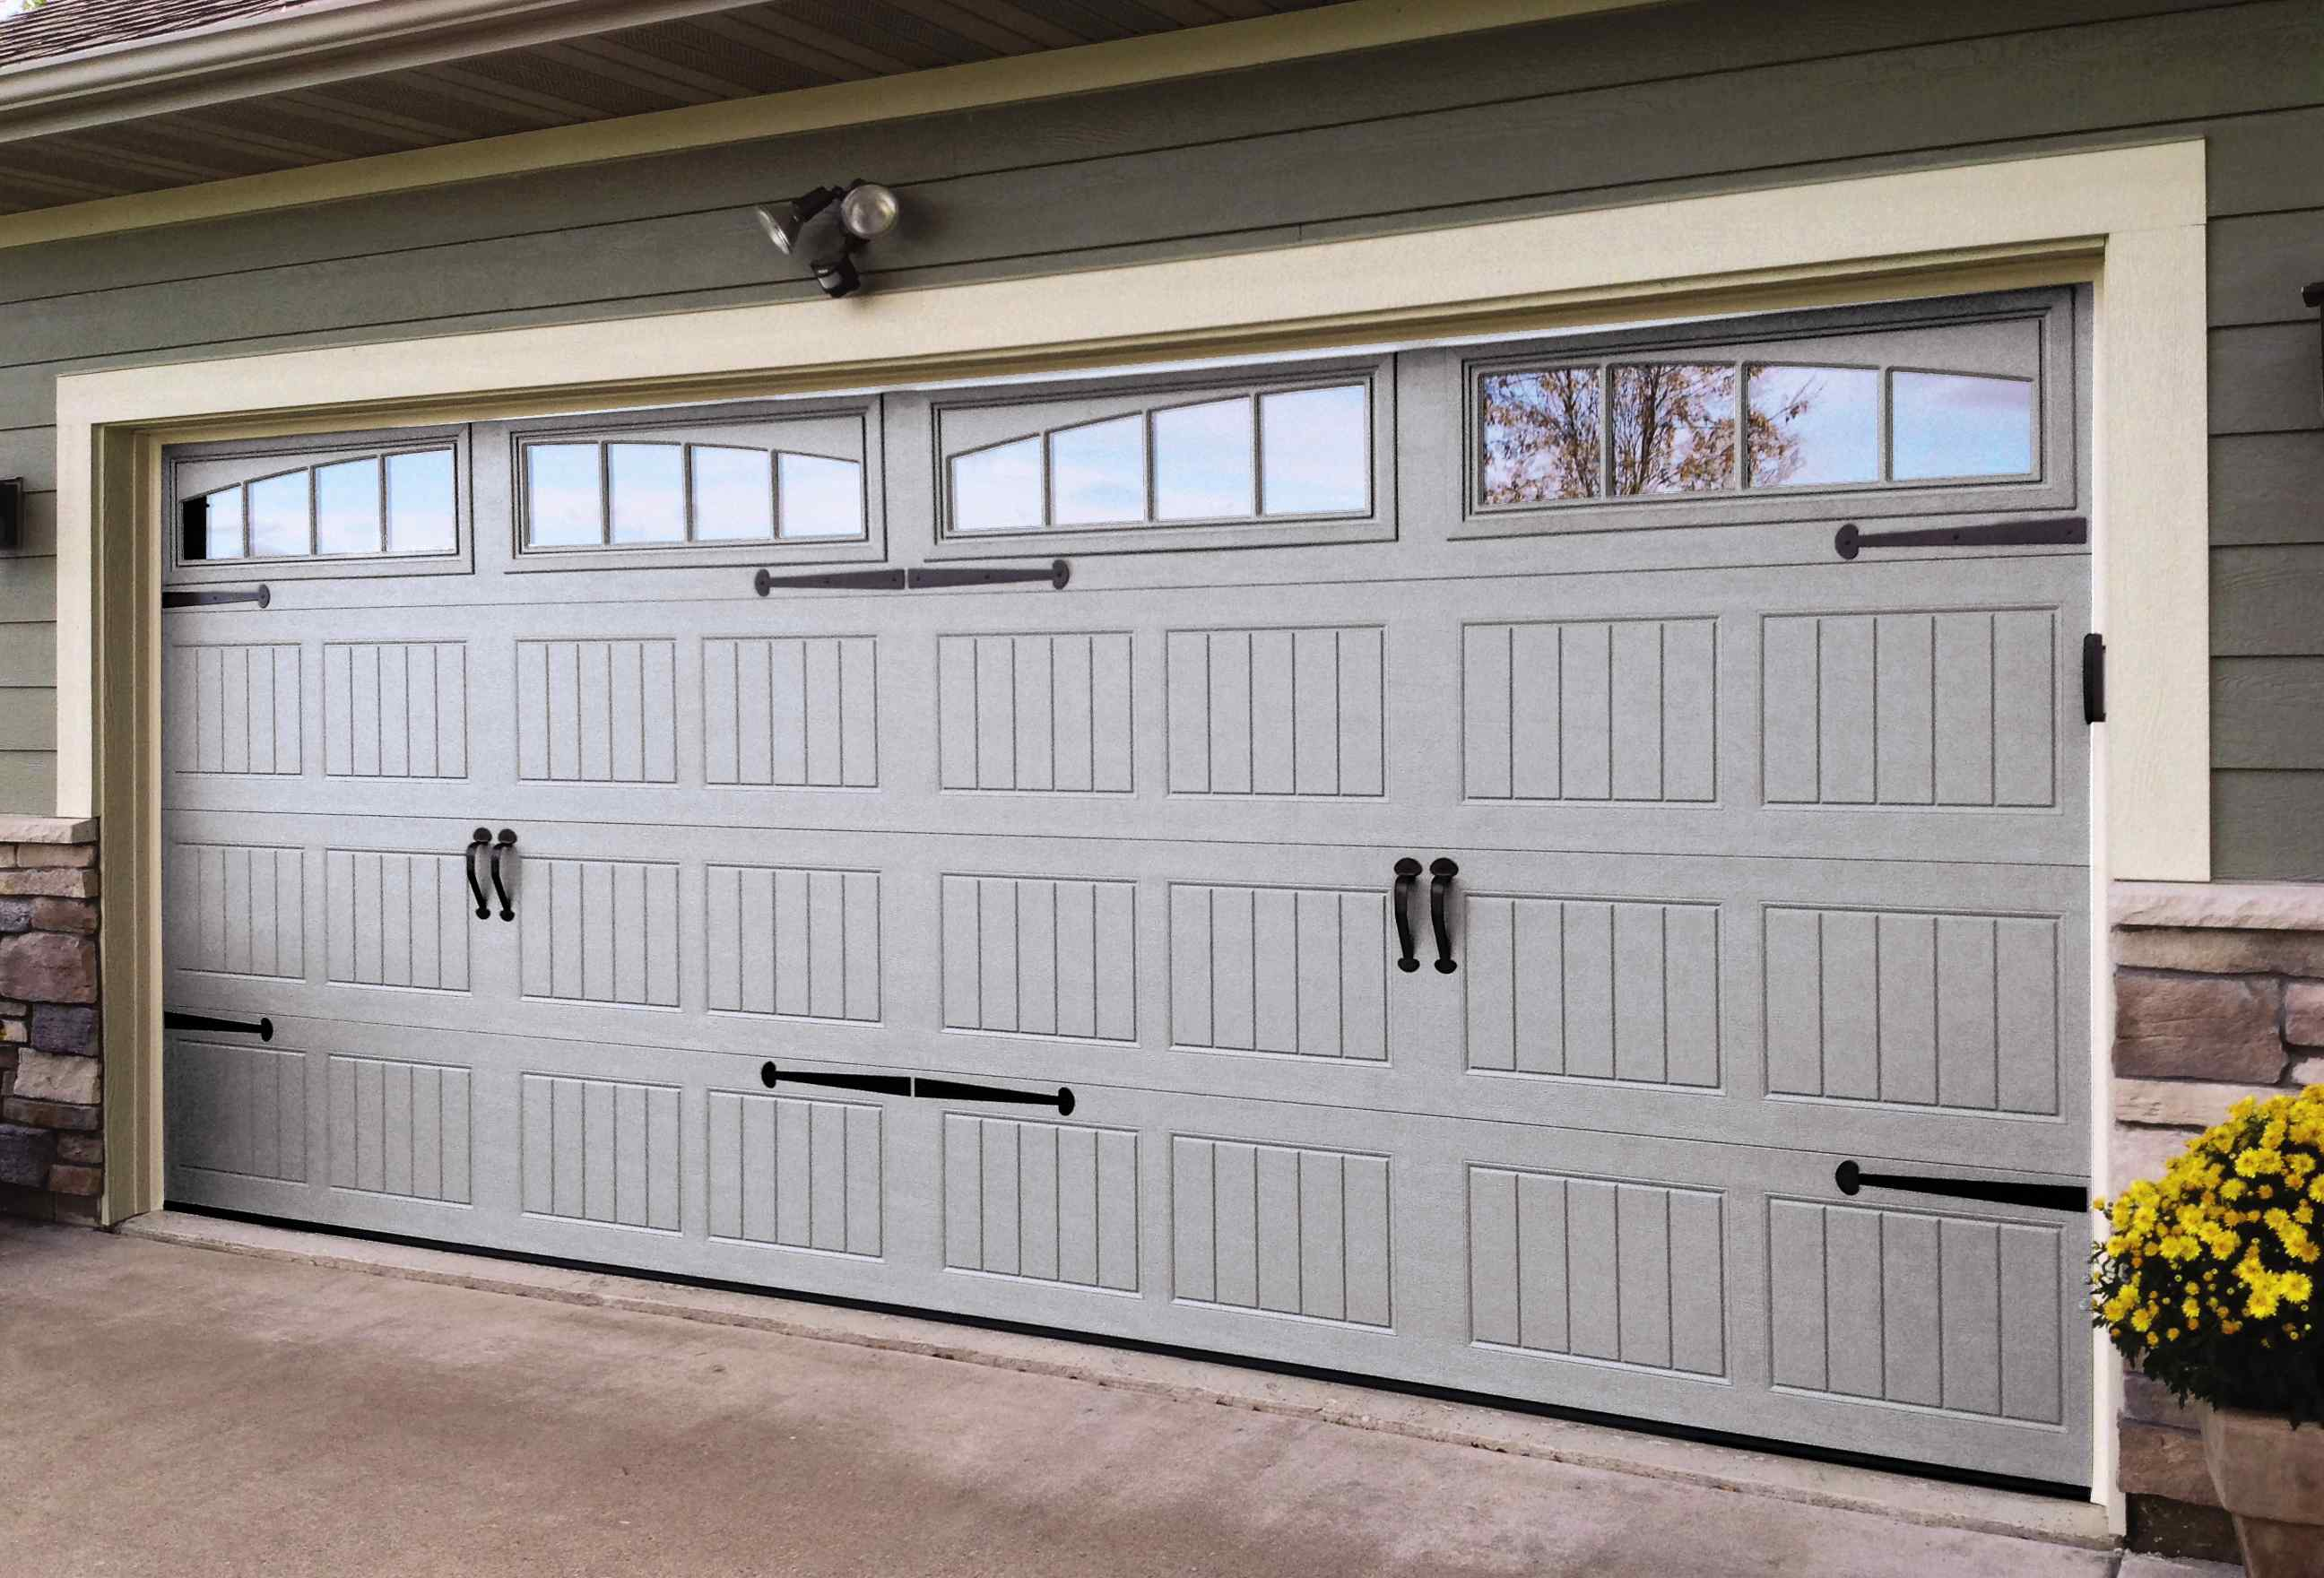 Thermacore Series energy-efficient steel insulated garage doors - residential